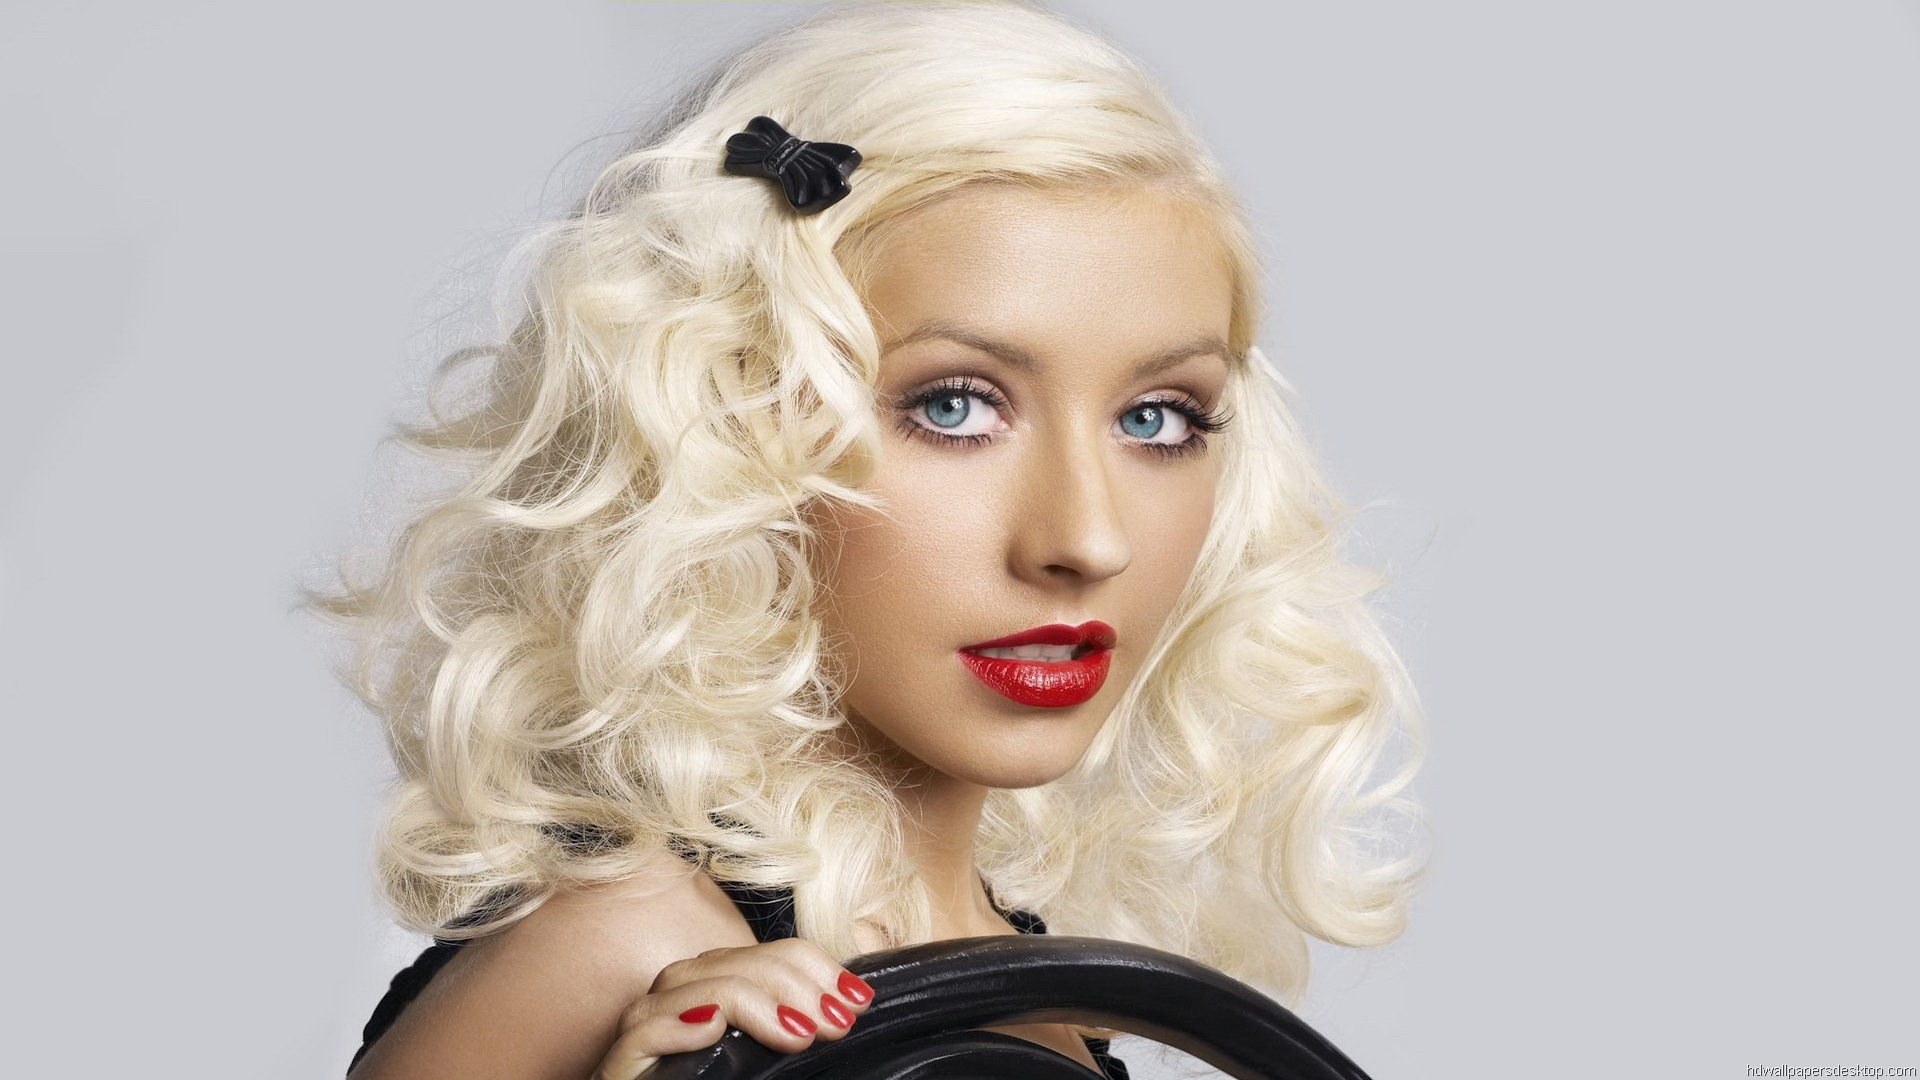 Christina Aguilera 2006 wallpaper